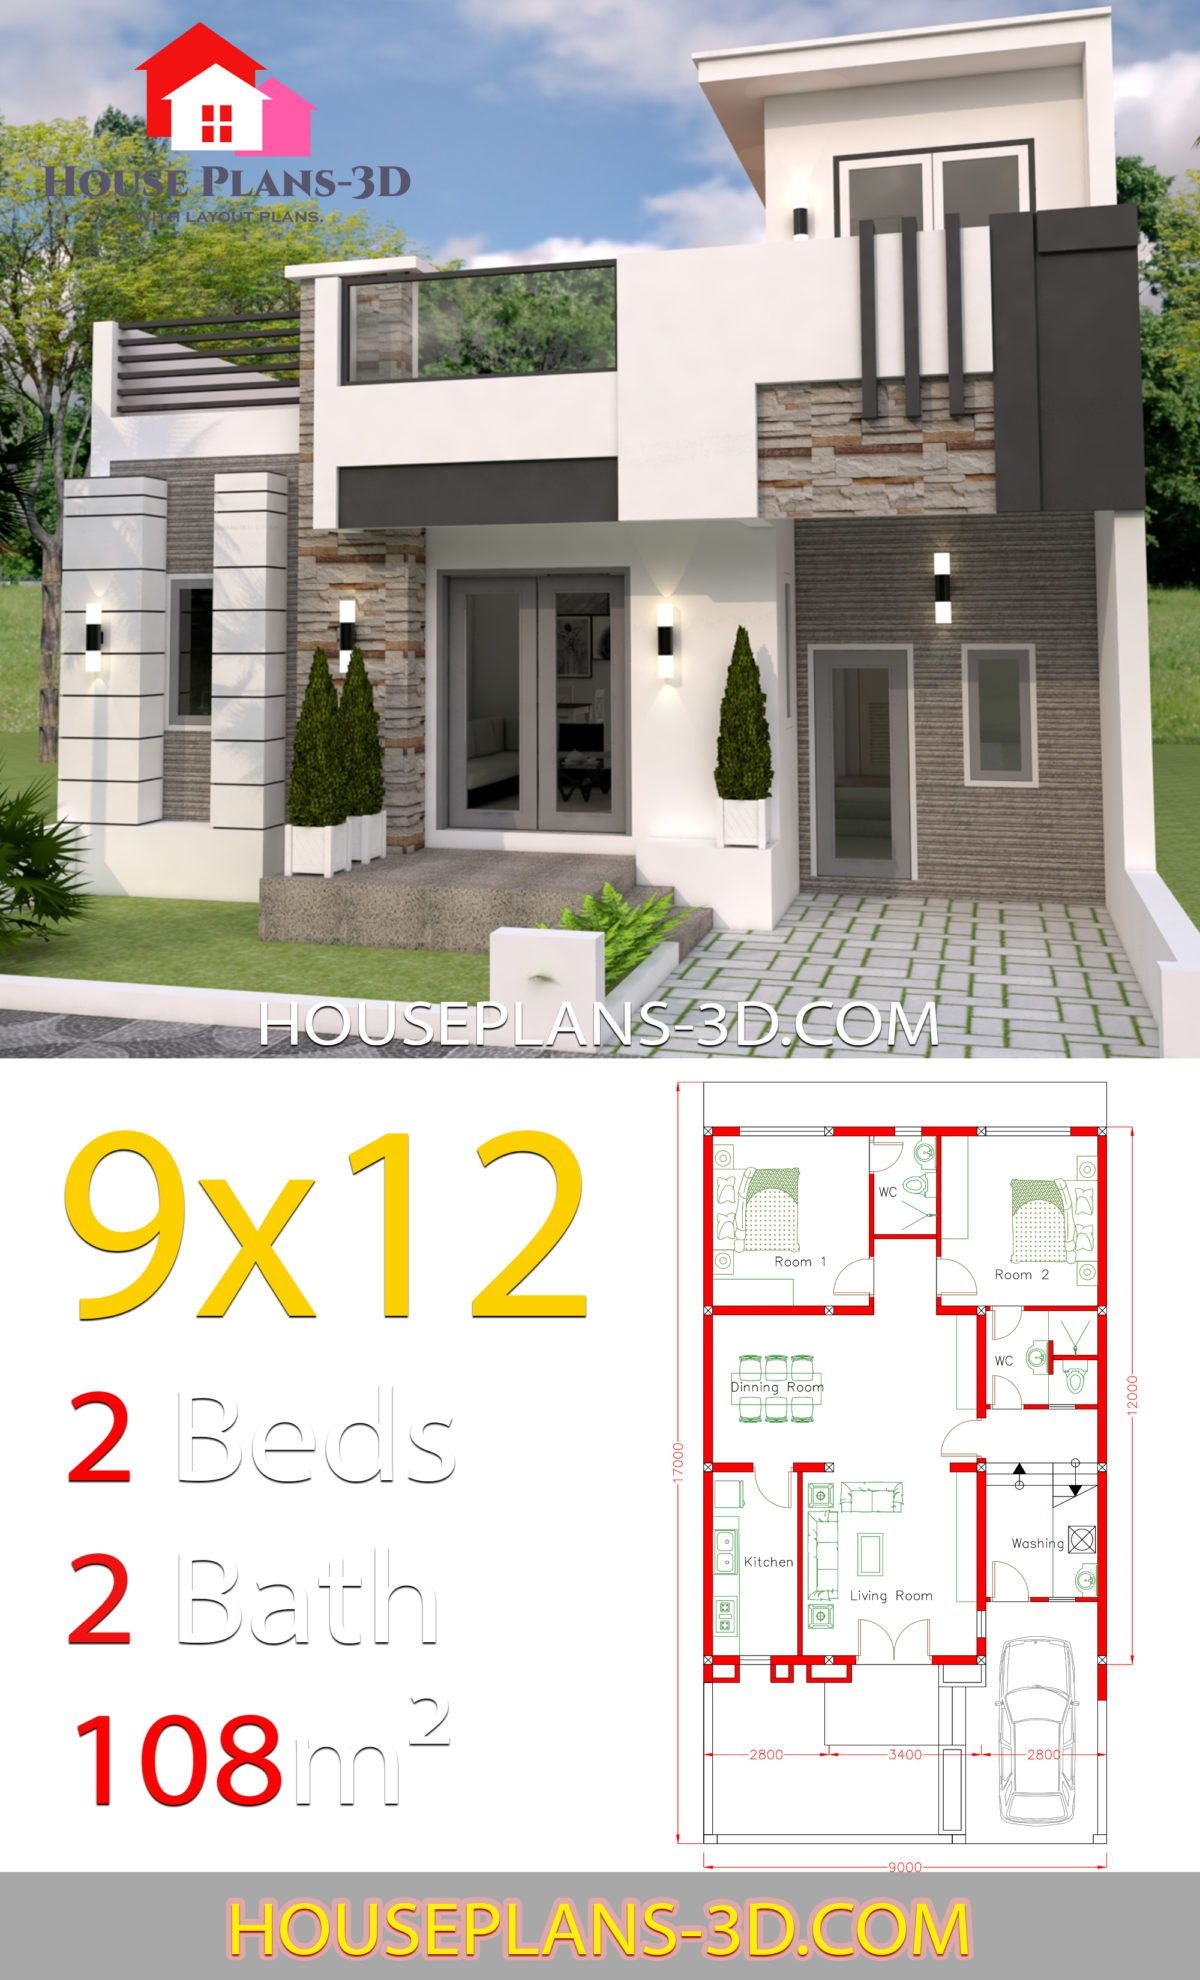 House Design 9x12 With 2 Bedrooms Full Plans House Plans 3d House Design Pictures House Designs Exterior Architectural House Plans